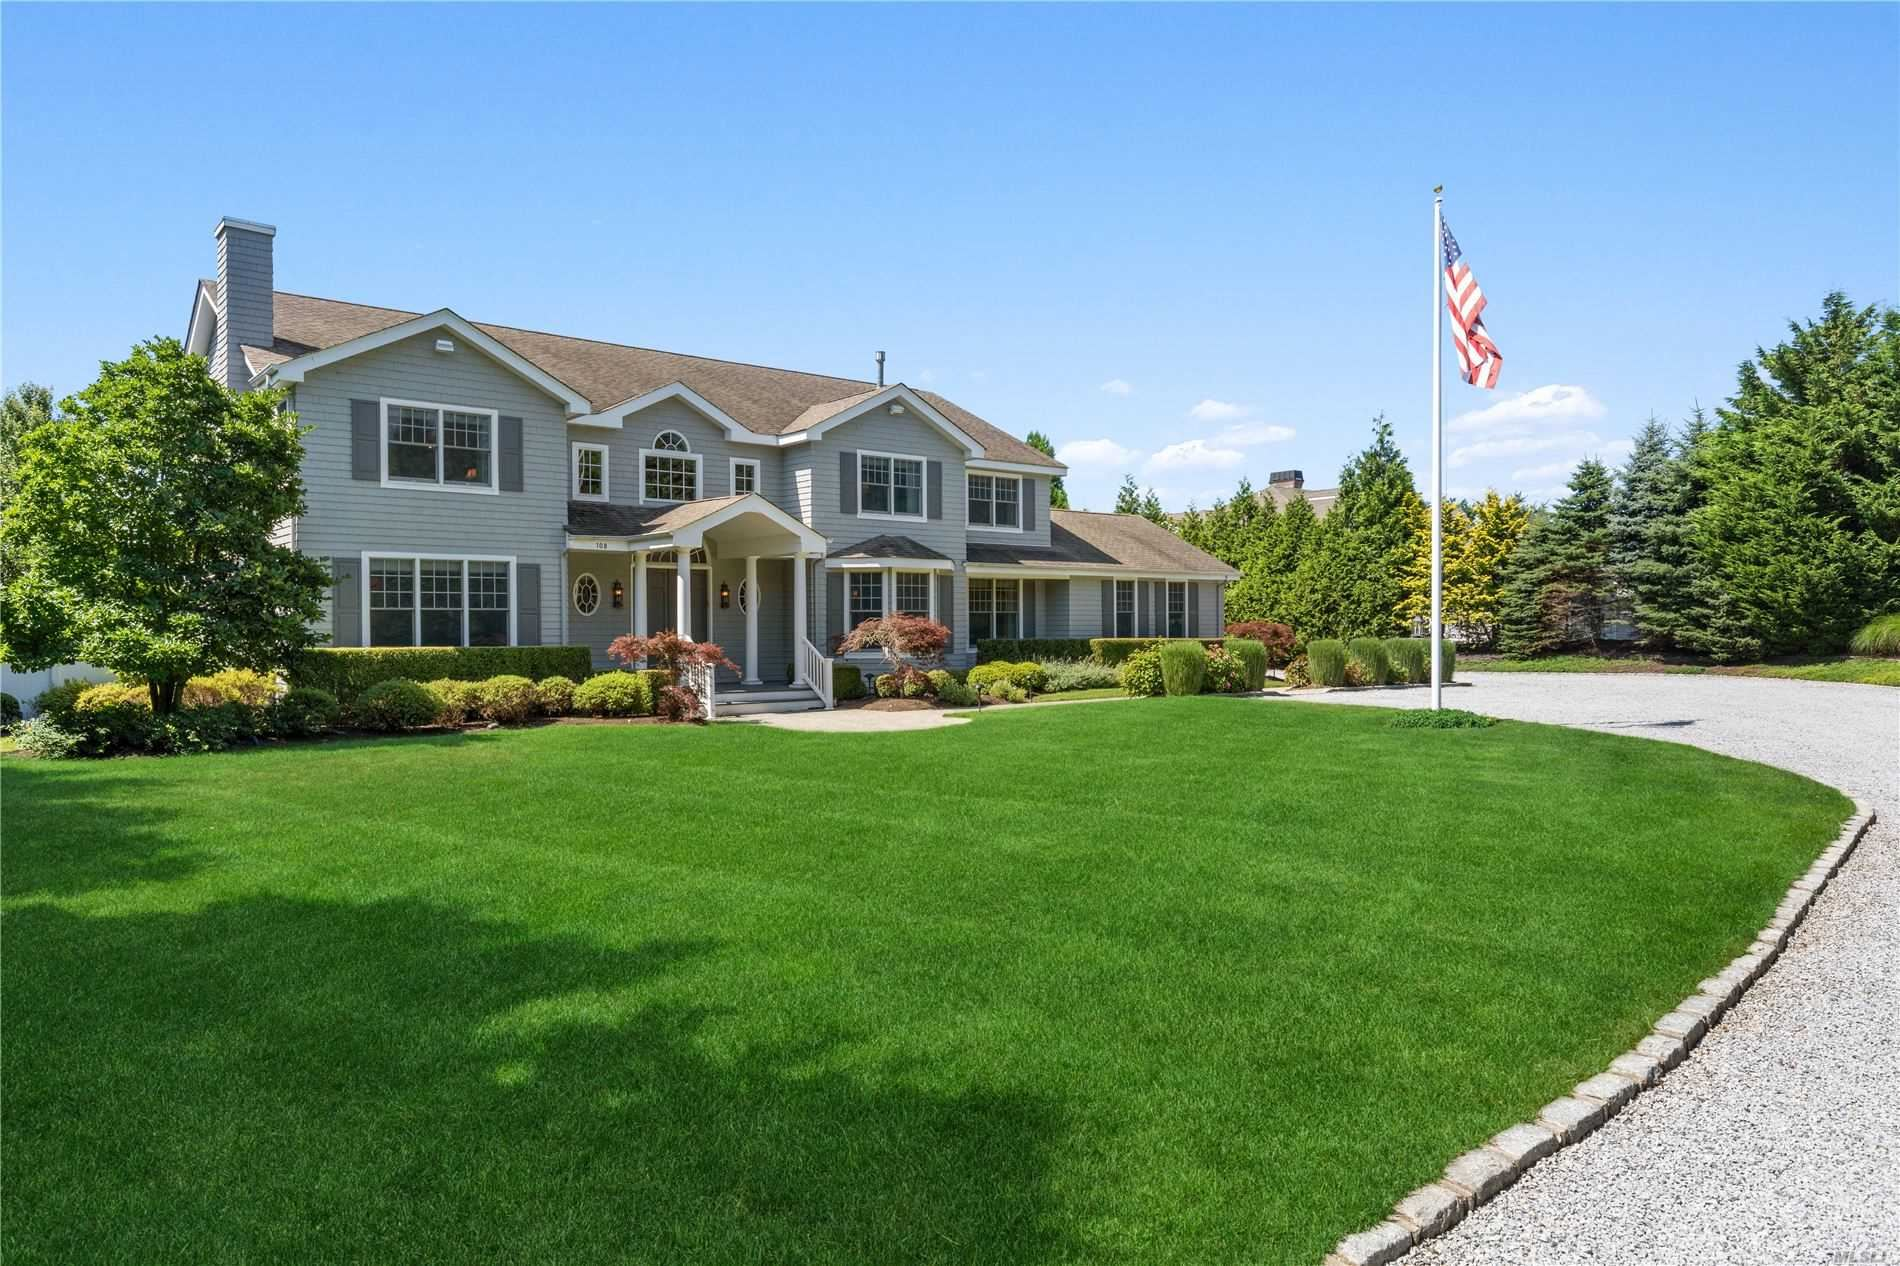 108 Parrish Pond Court E, Southampton, NY 11968 - MLS#: 3240109